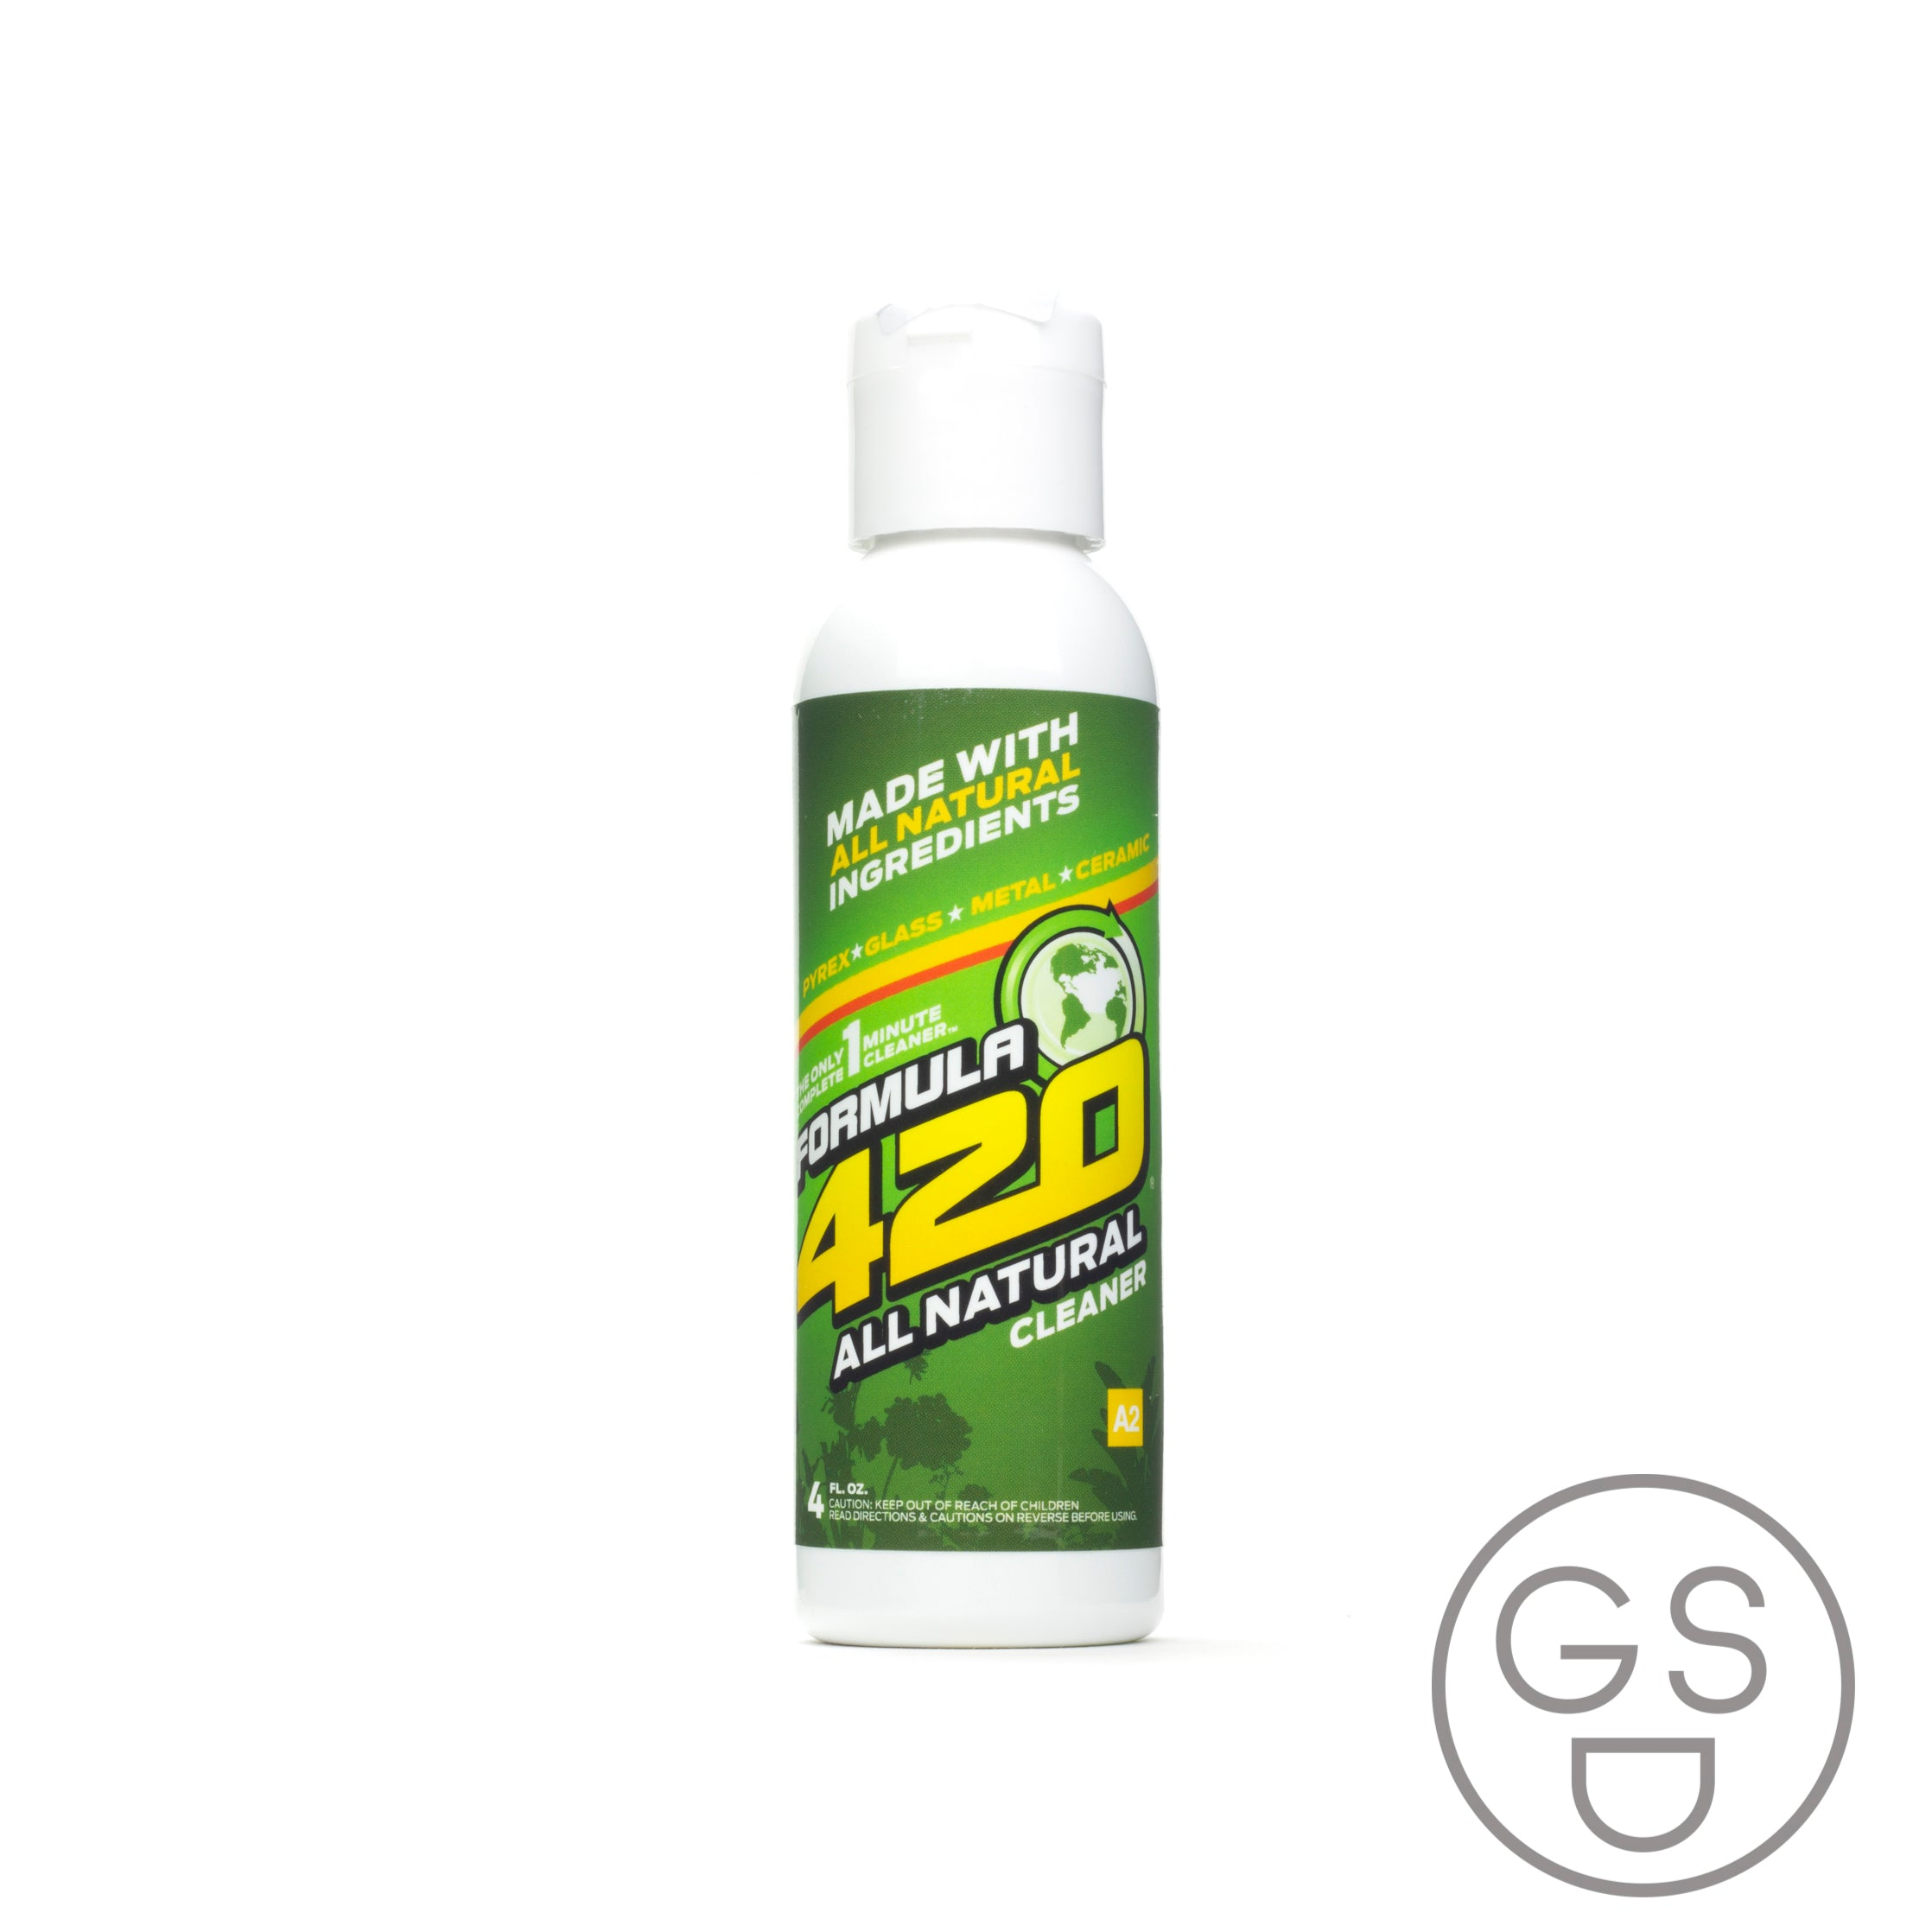 F-420 All Natural Cleaner - 4oz/118ml